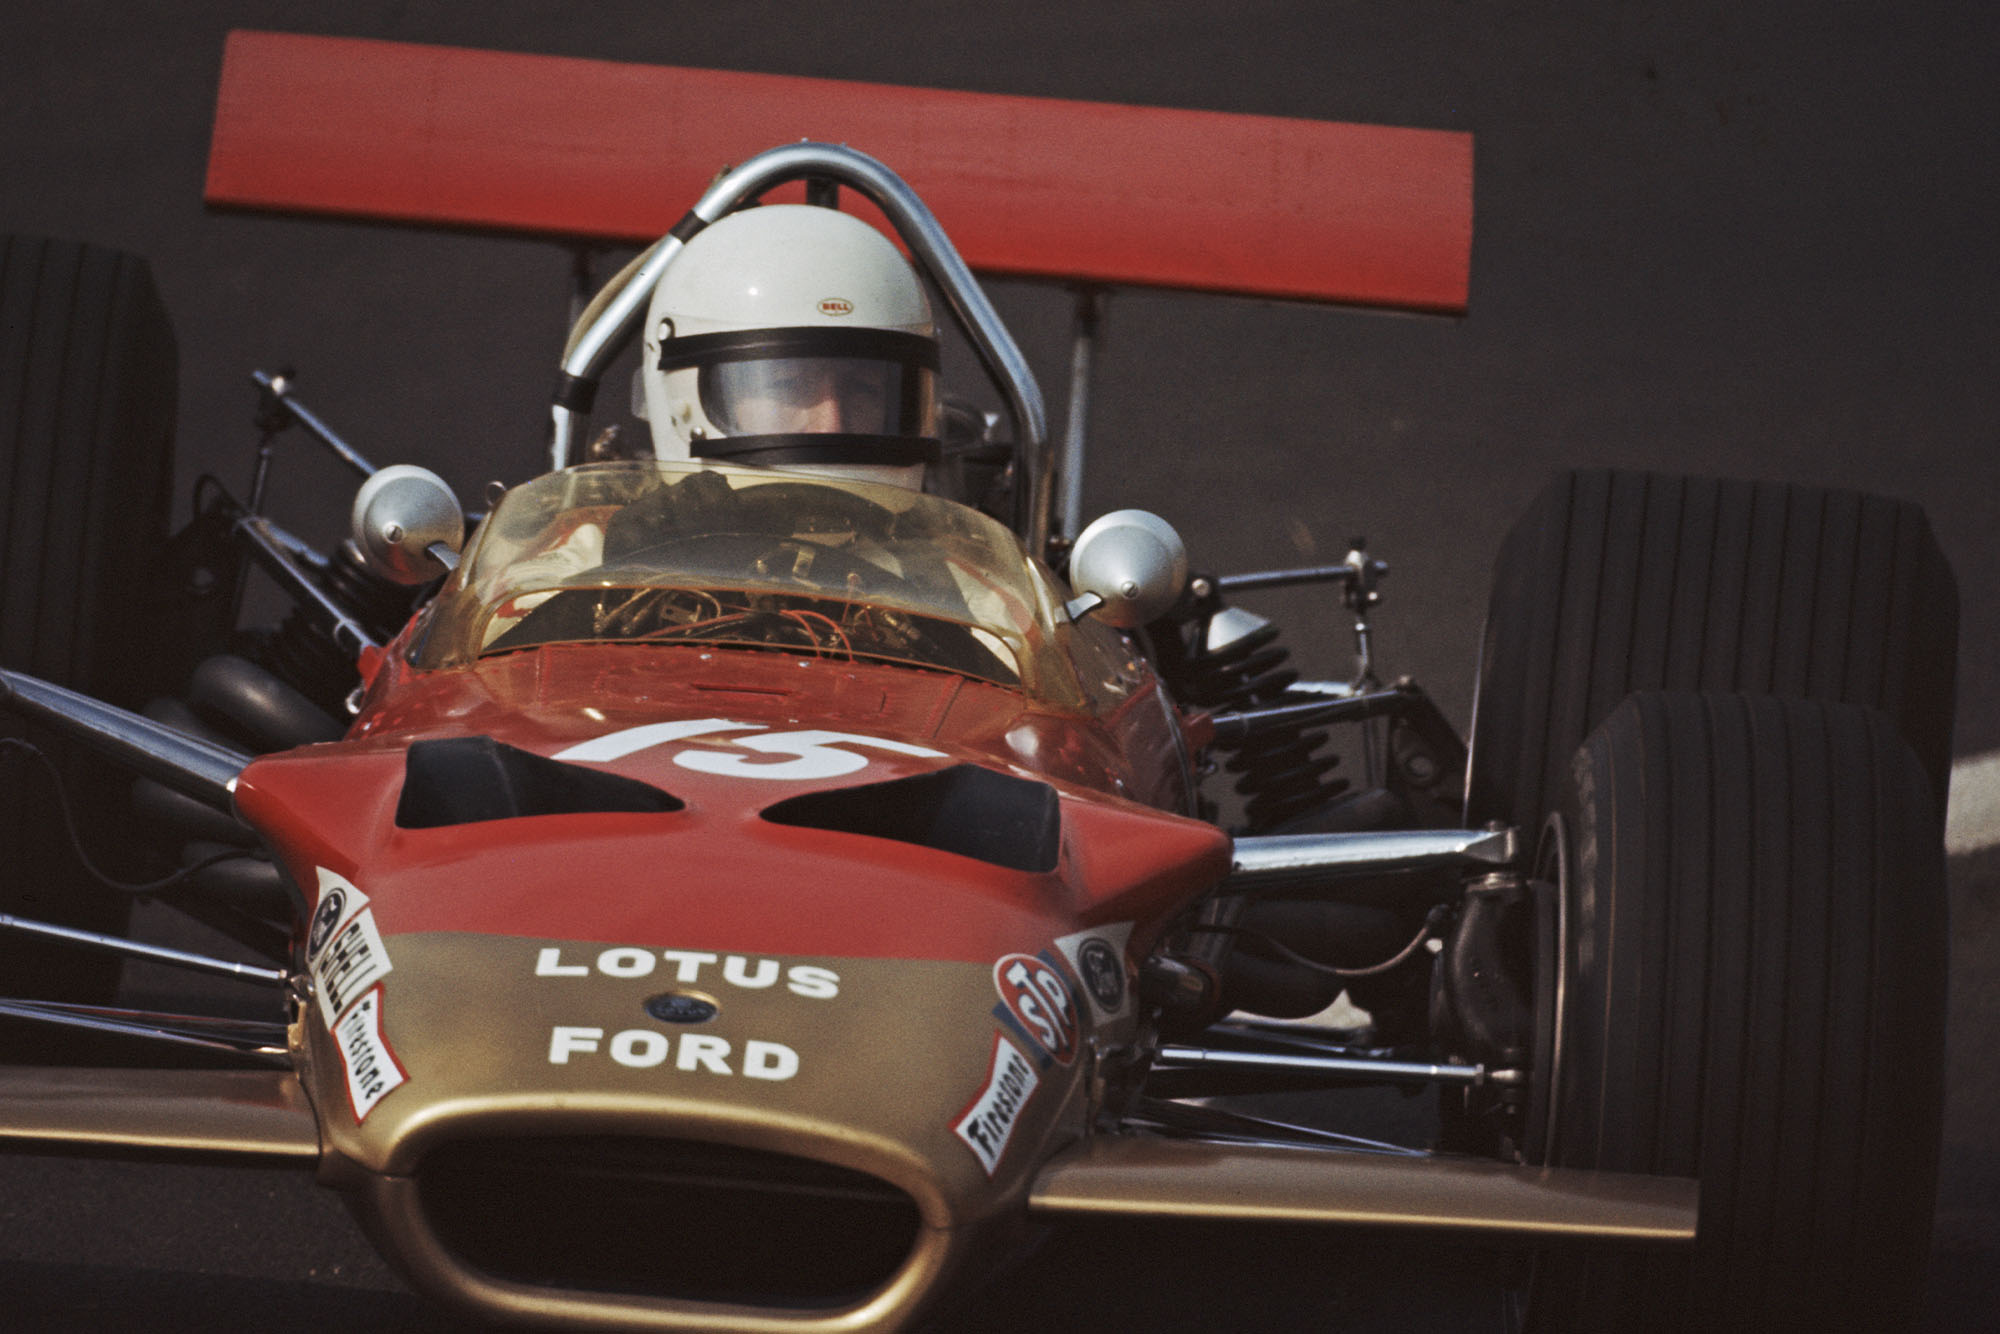 Jochen Rindt driving for Lotus at the 1969 French Grand Prix.